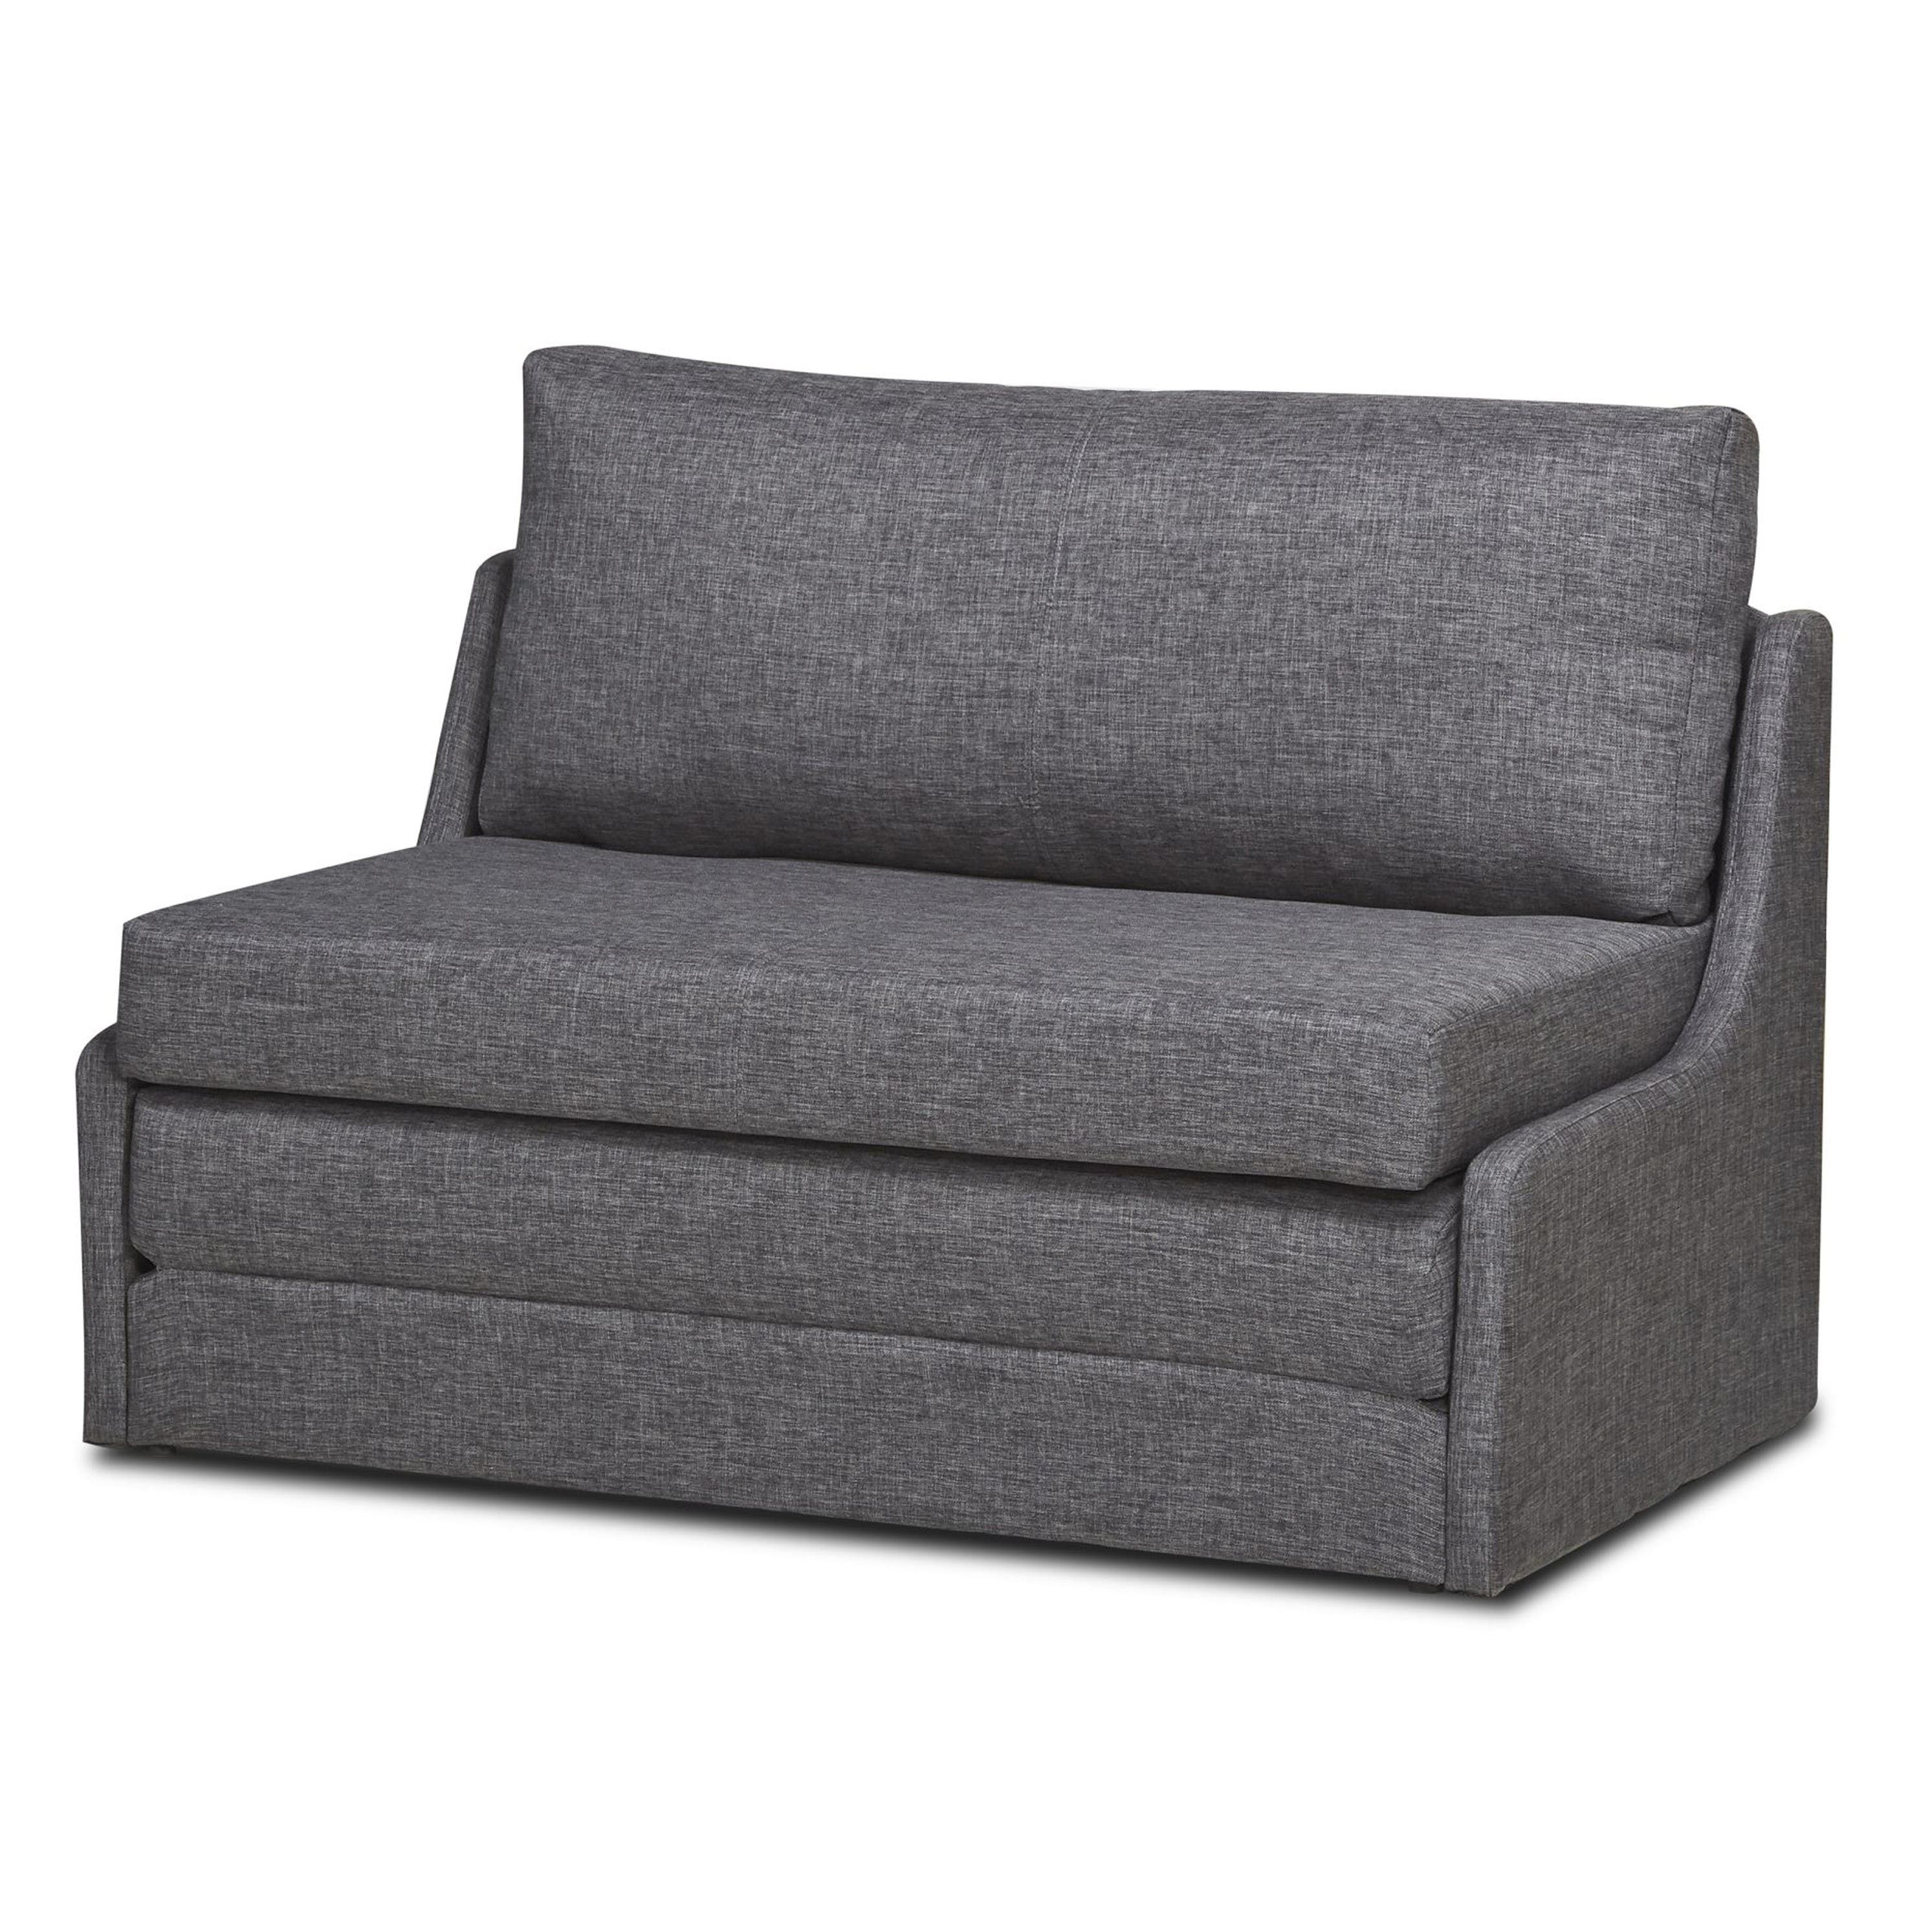 The Best Sleeper Sofas For Small Spaces Sofas For Small Spaces Loveseat Sleeper Love Seat